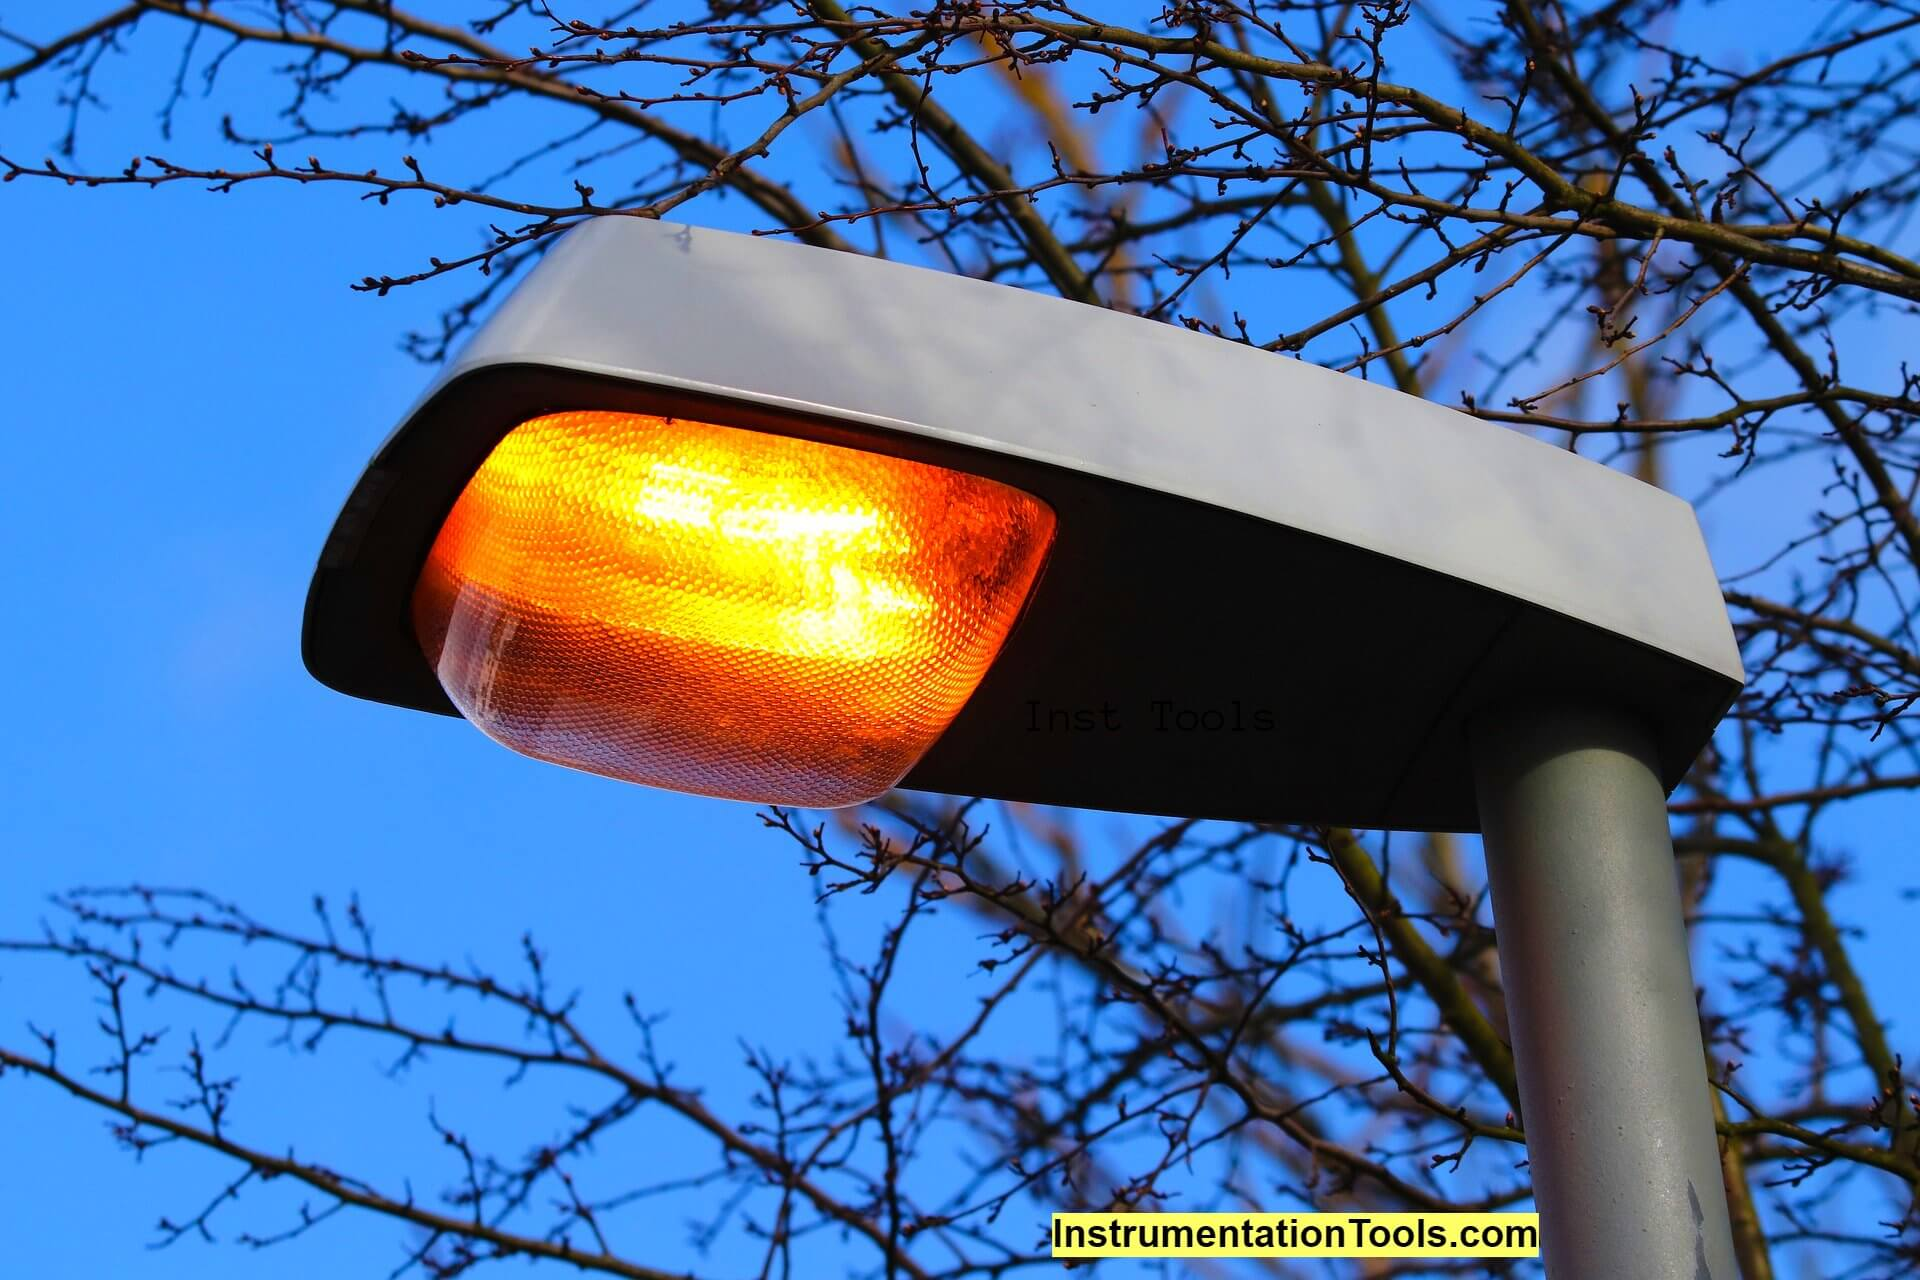 Industrial Light Fittings and Street Light Poles Corrosion Problems